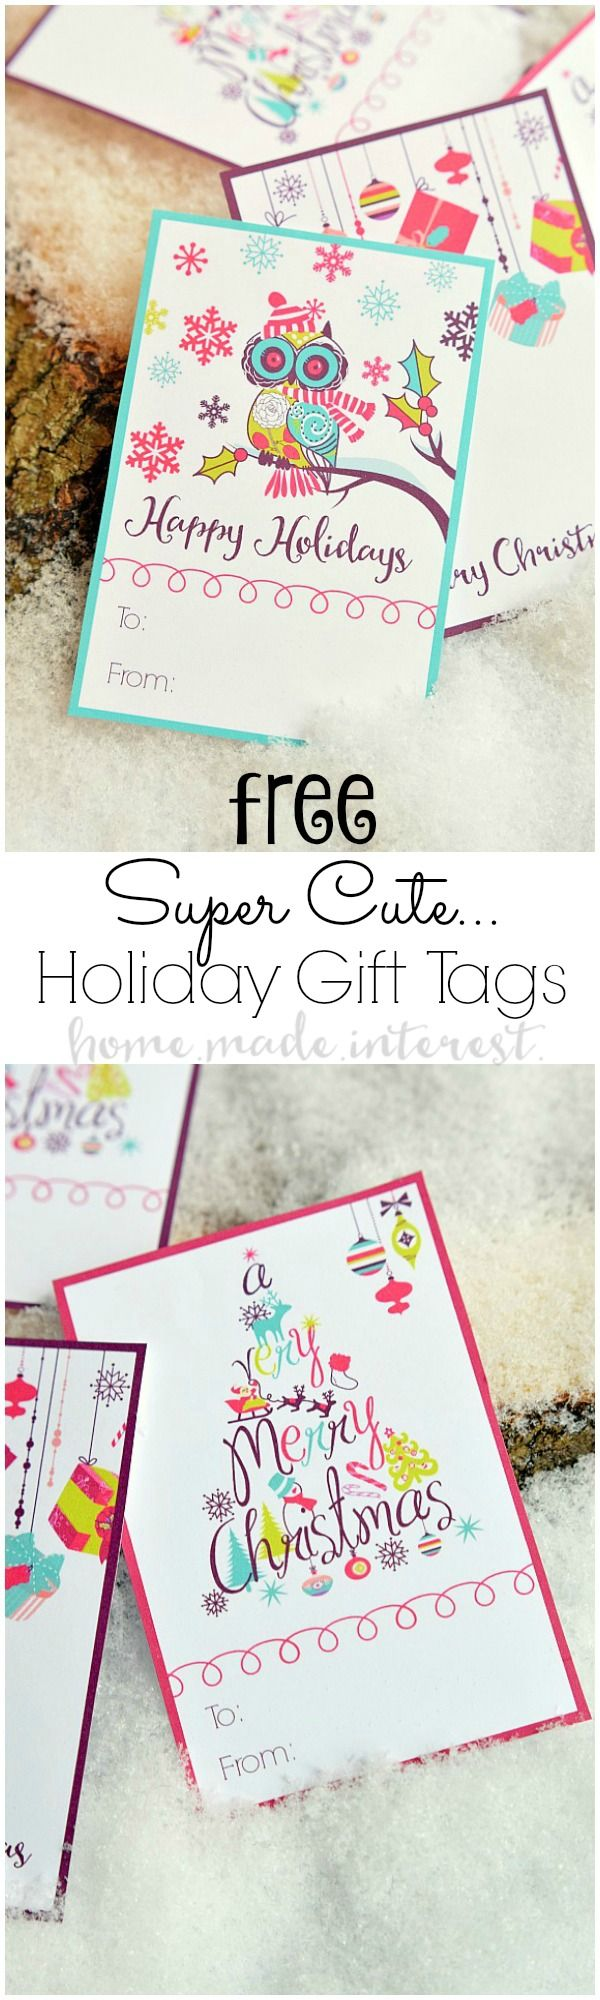 These free printable Christmas gift tags are a simple way to add a little color to your gift wrapping. #ad #GraphicStockHolidayChallenge